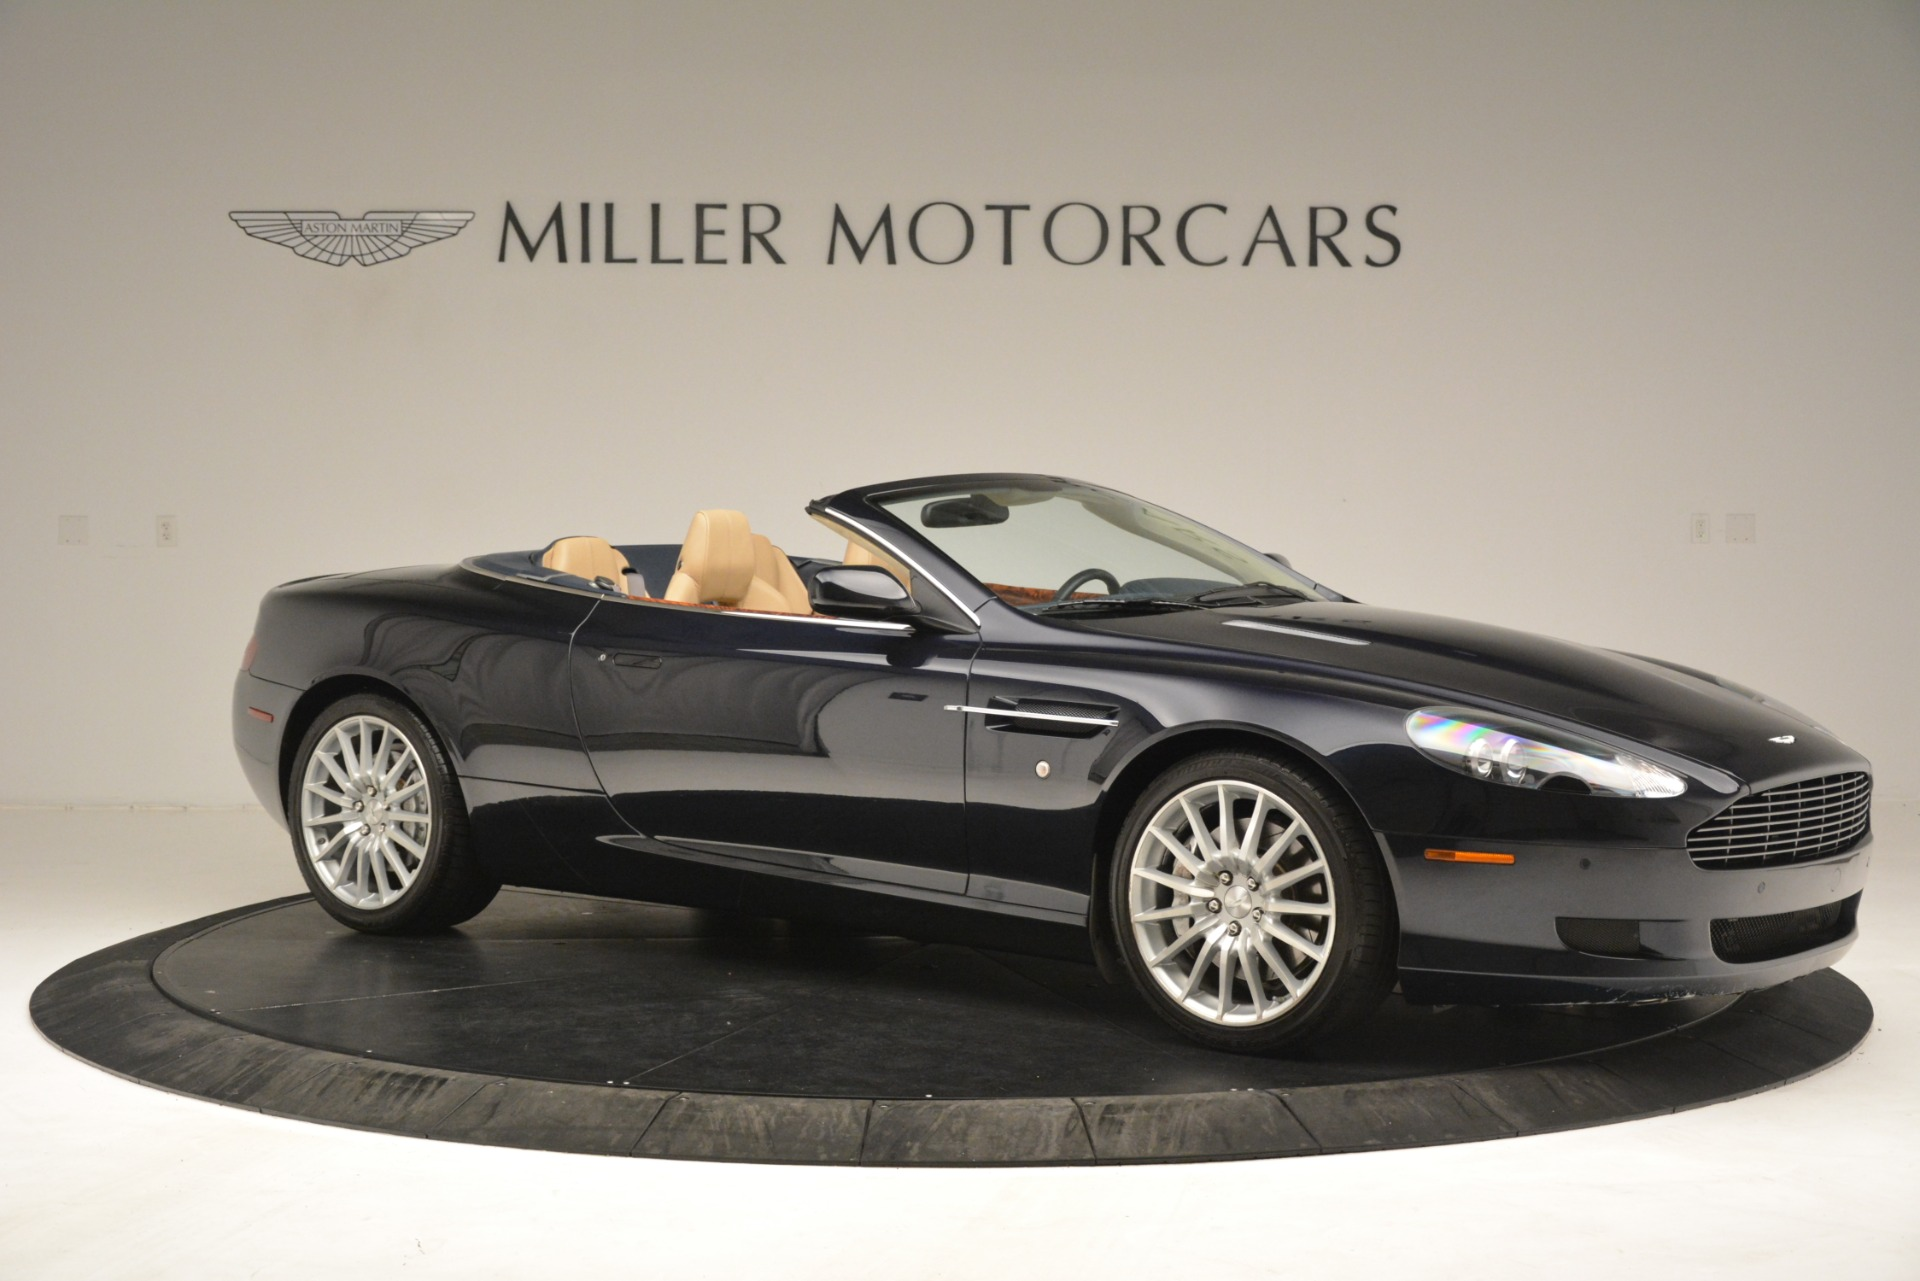 Used 2007 Aston Martin DB9 Convertible For Sale In Westport, CT 3291_p10